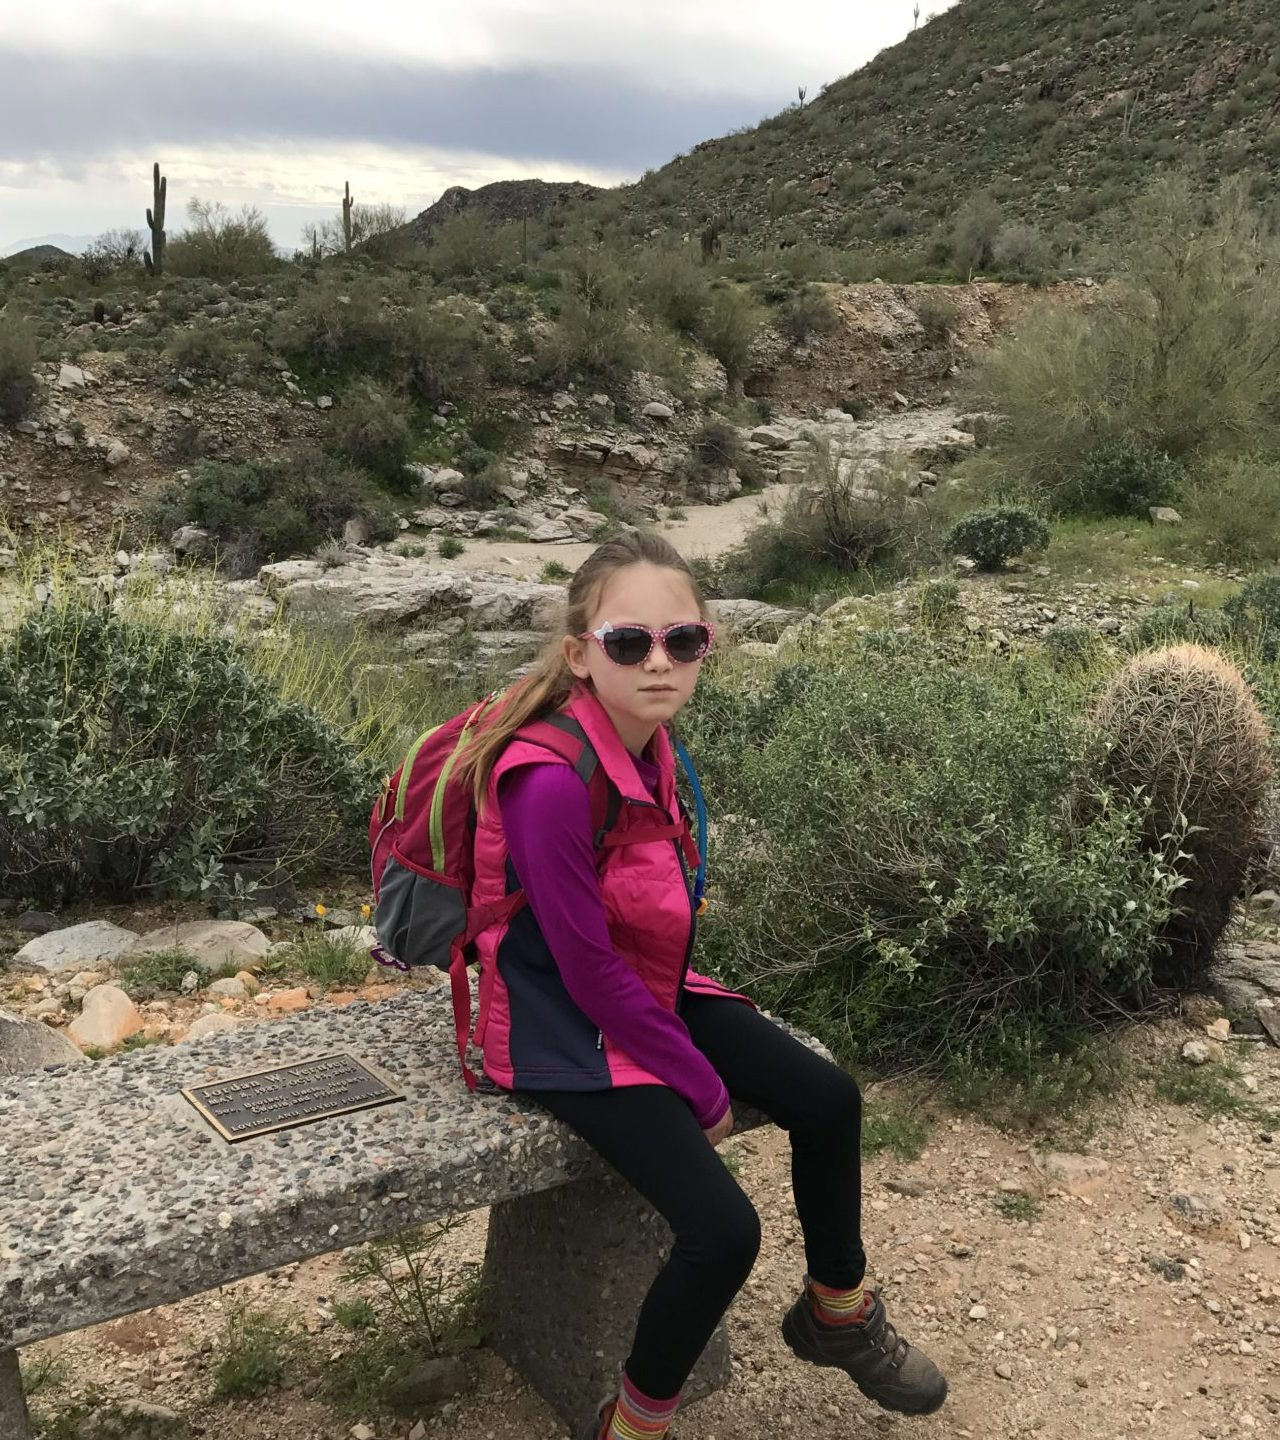 Hiking in the Desert with Kids